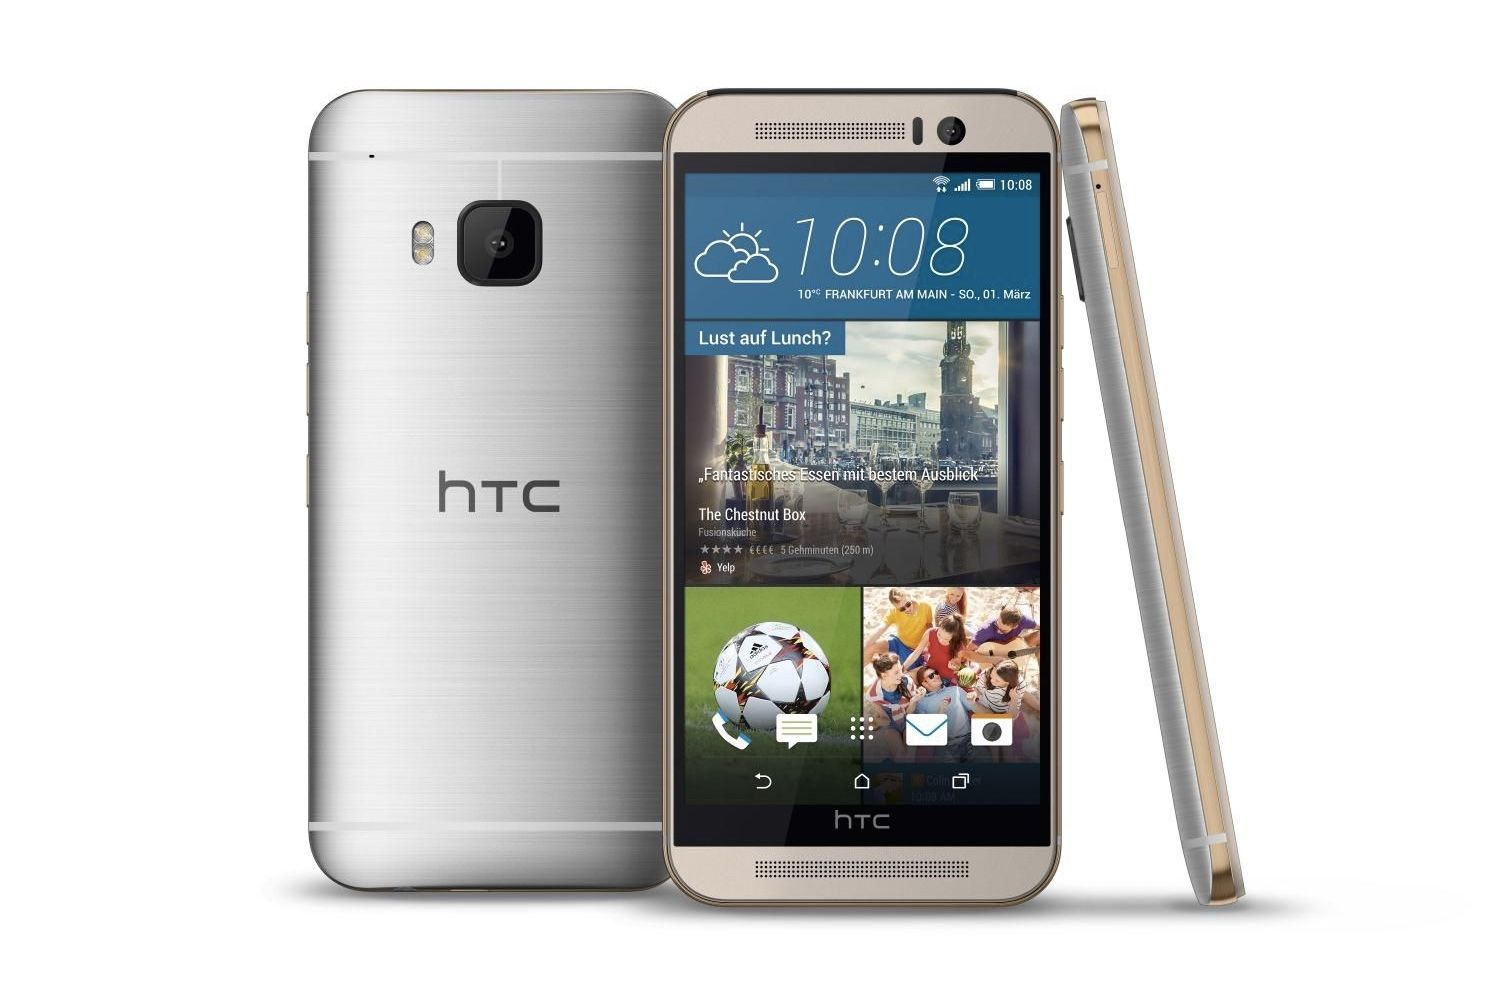 HTC One M9 androidsage